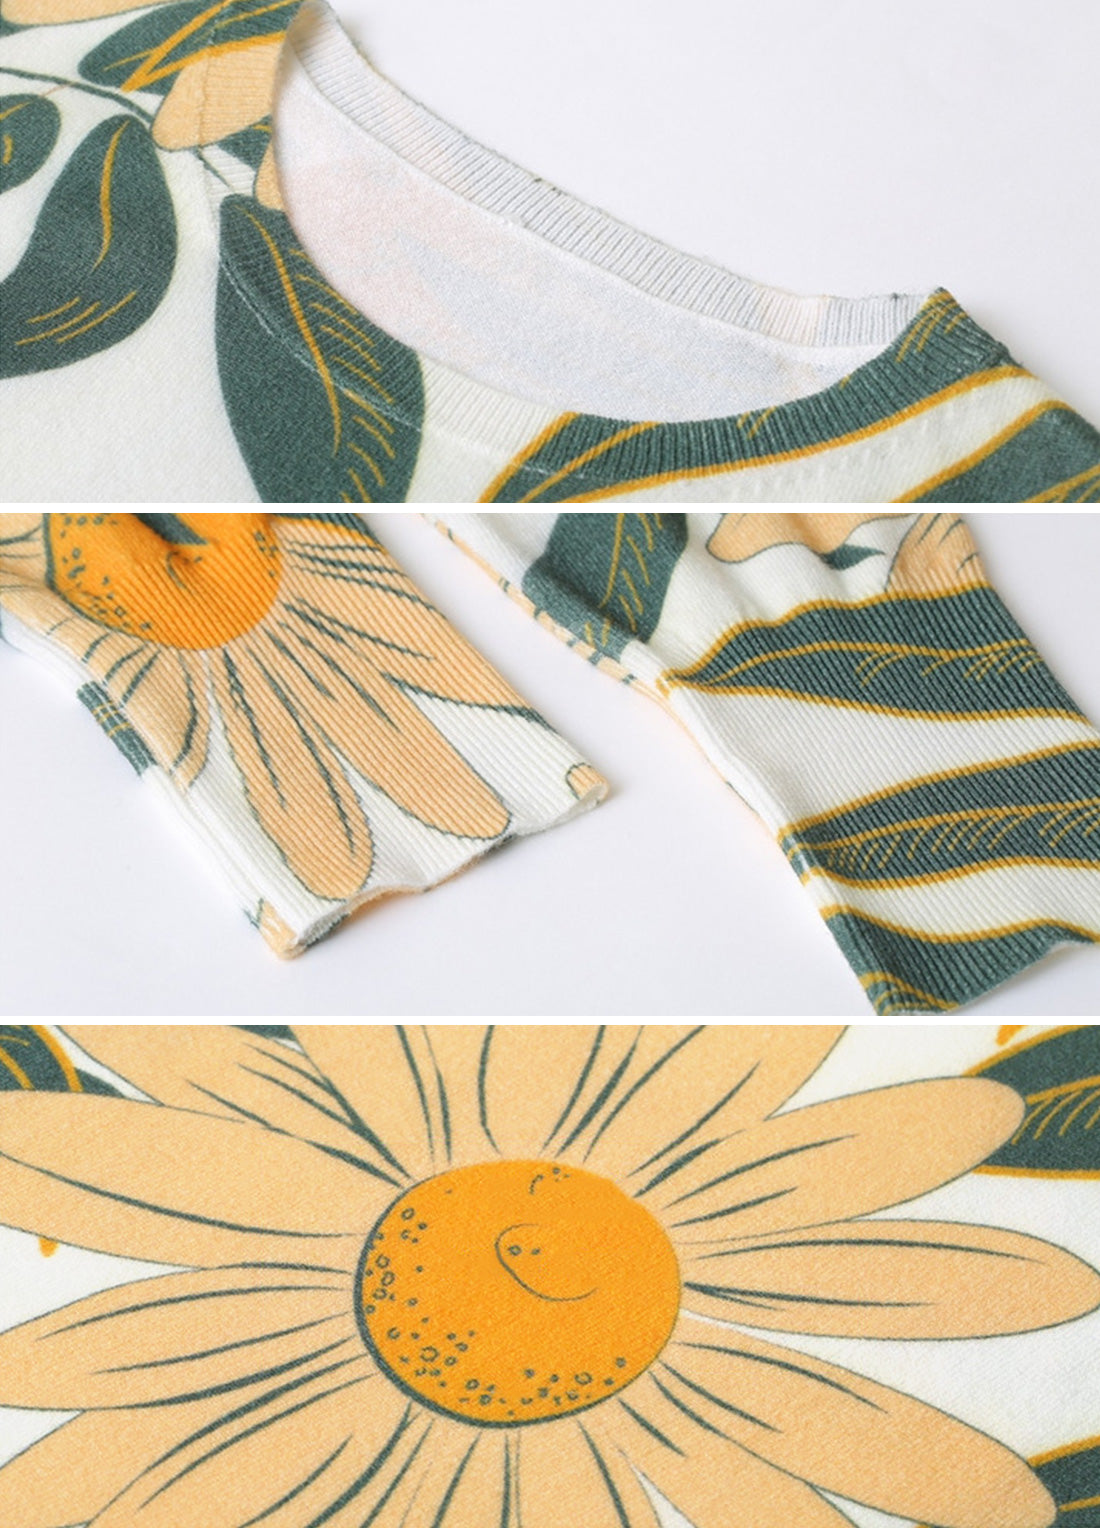 Evening Light Blooming Flower T-Shirt Details